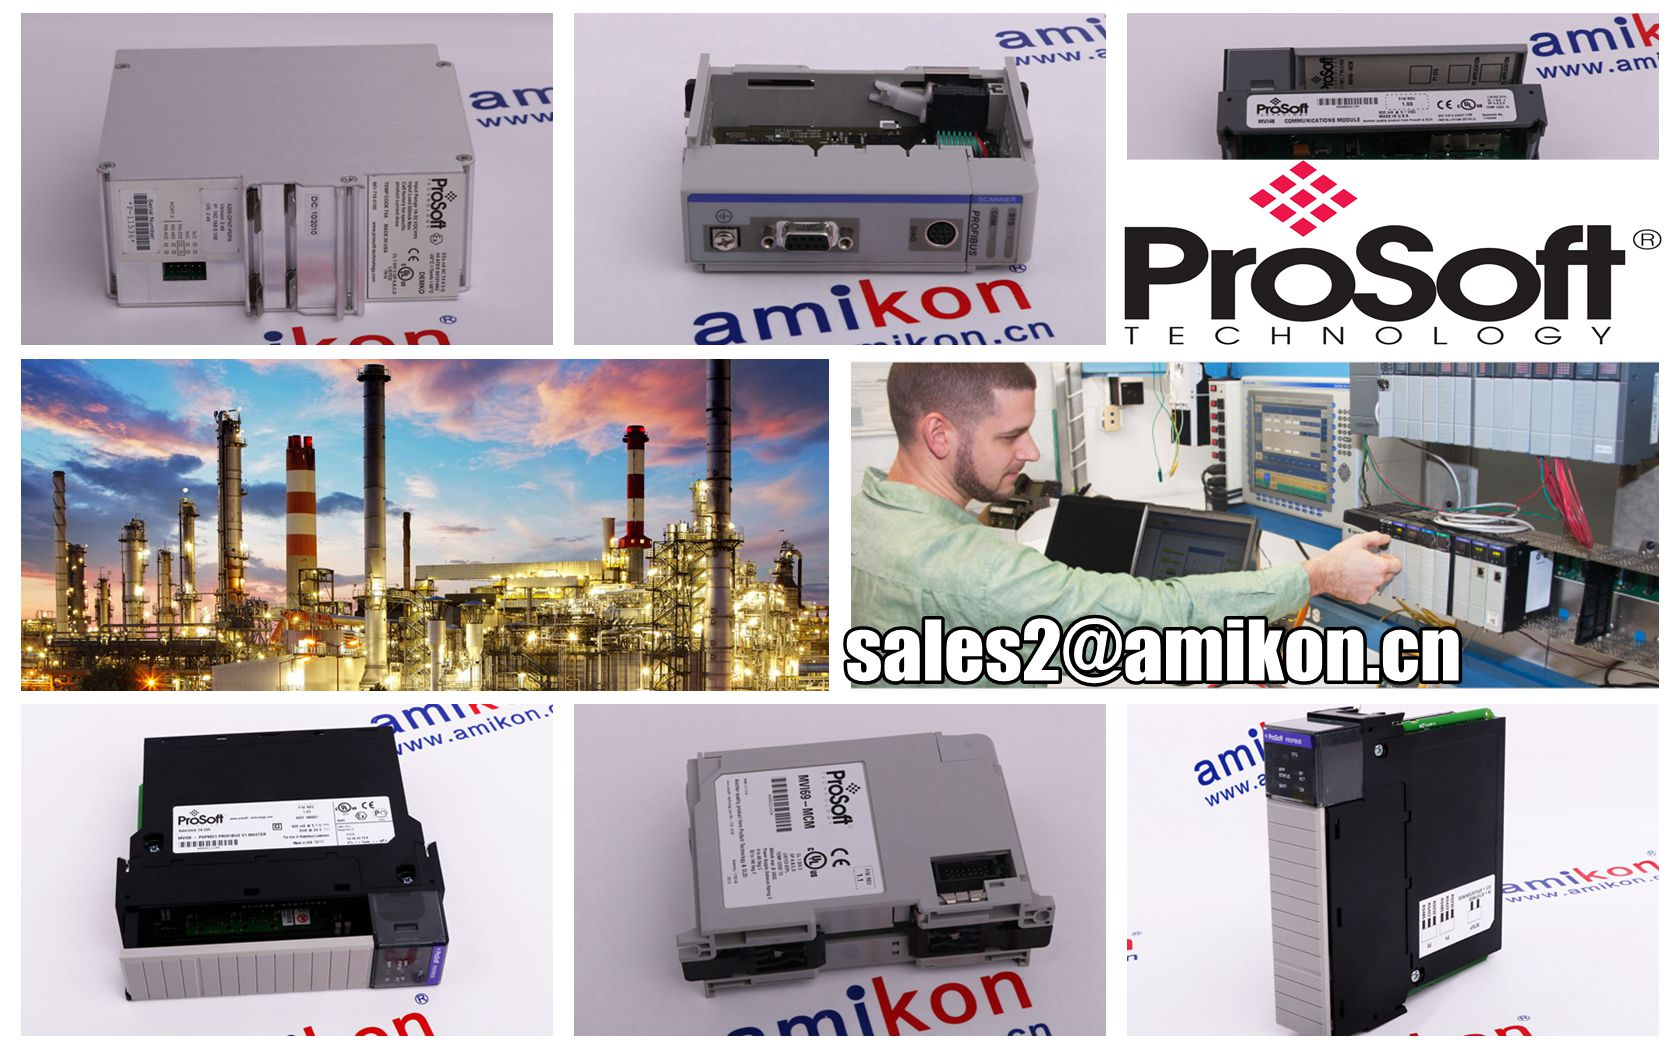 HONEYWELL 51309150-175 | sales2@amikon.cn | ship in 24h